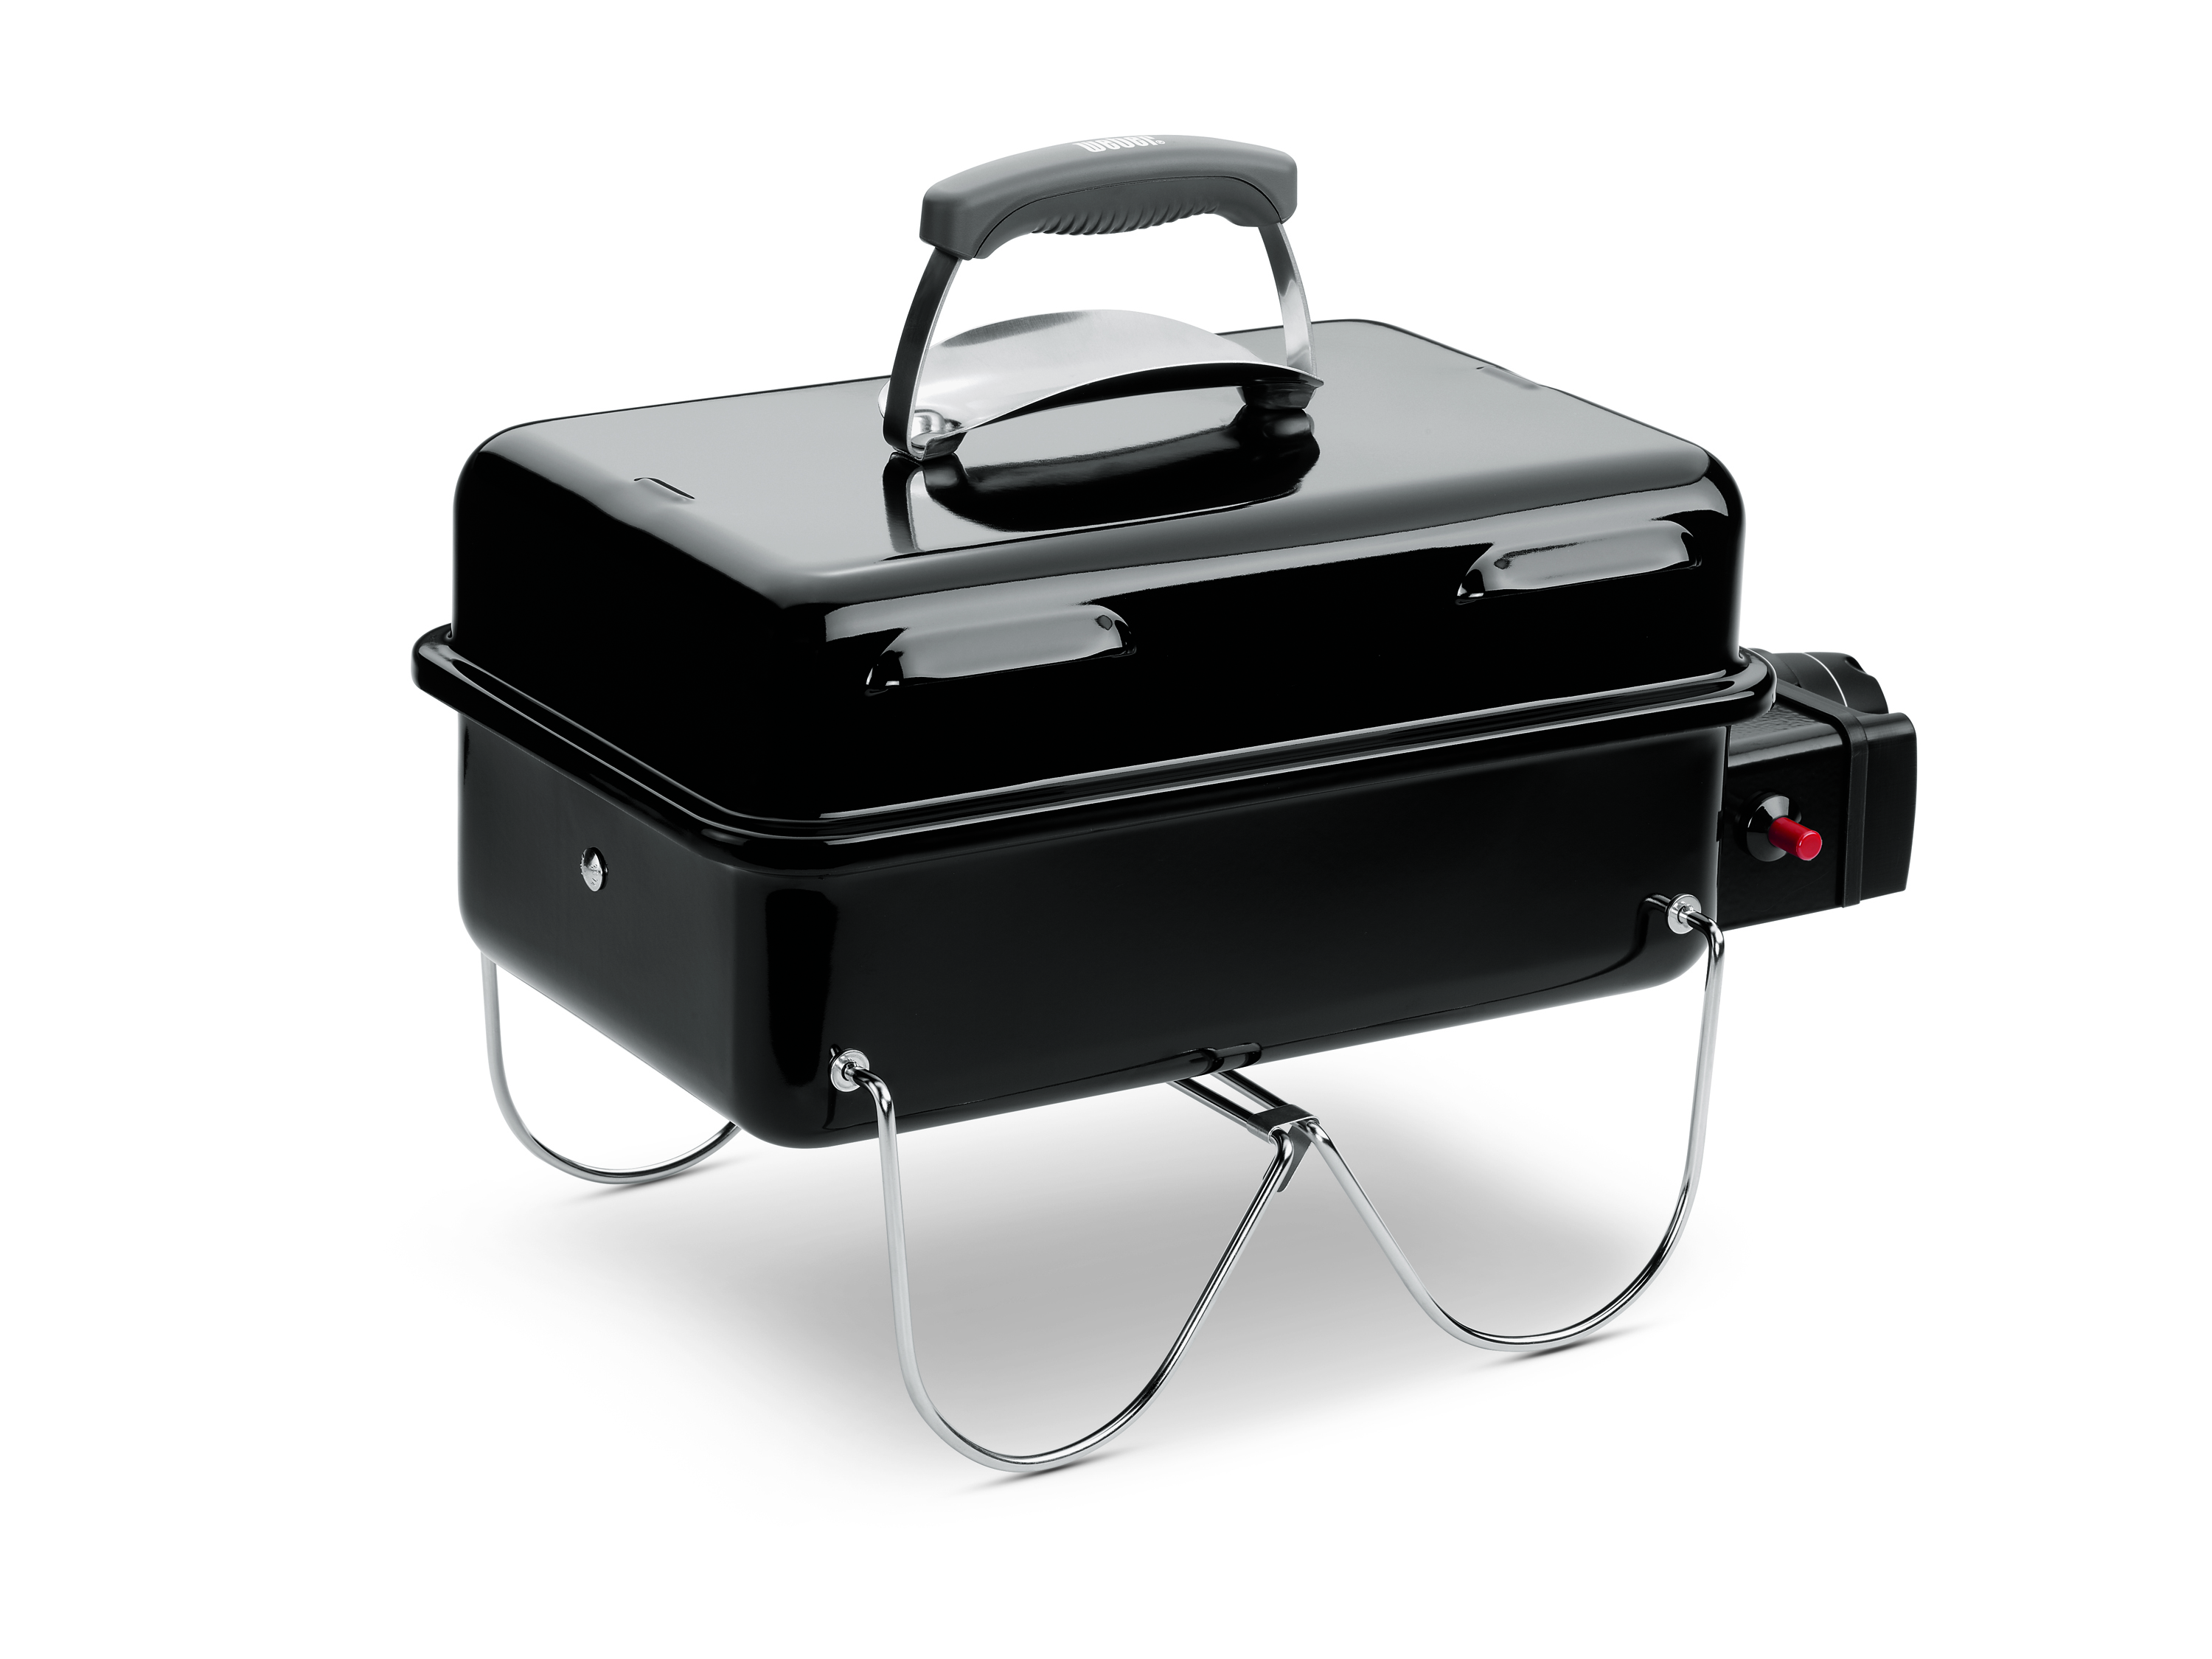 kleiner weber gasgrill kleiner kompakter gas grill. Black Bedroom Furniture Sets. Home Design Ideas